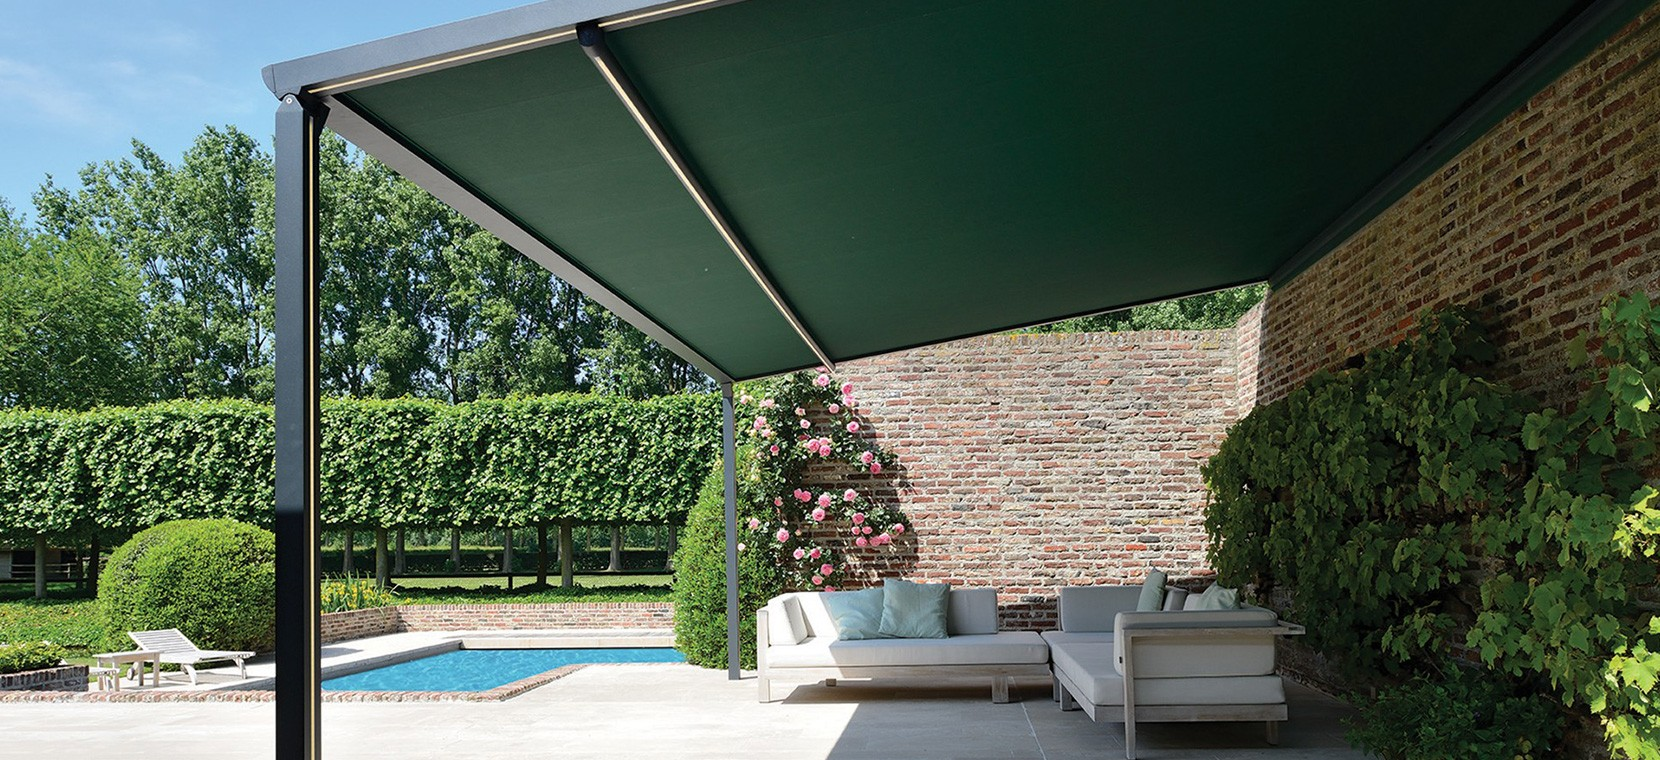 Lean-to patio cover with retractable roof